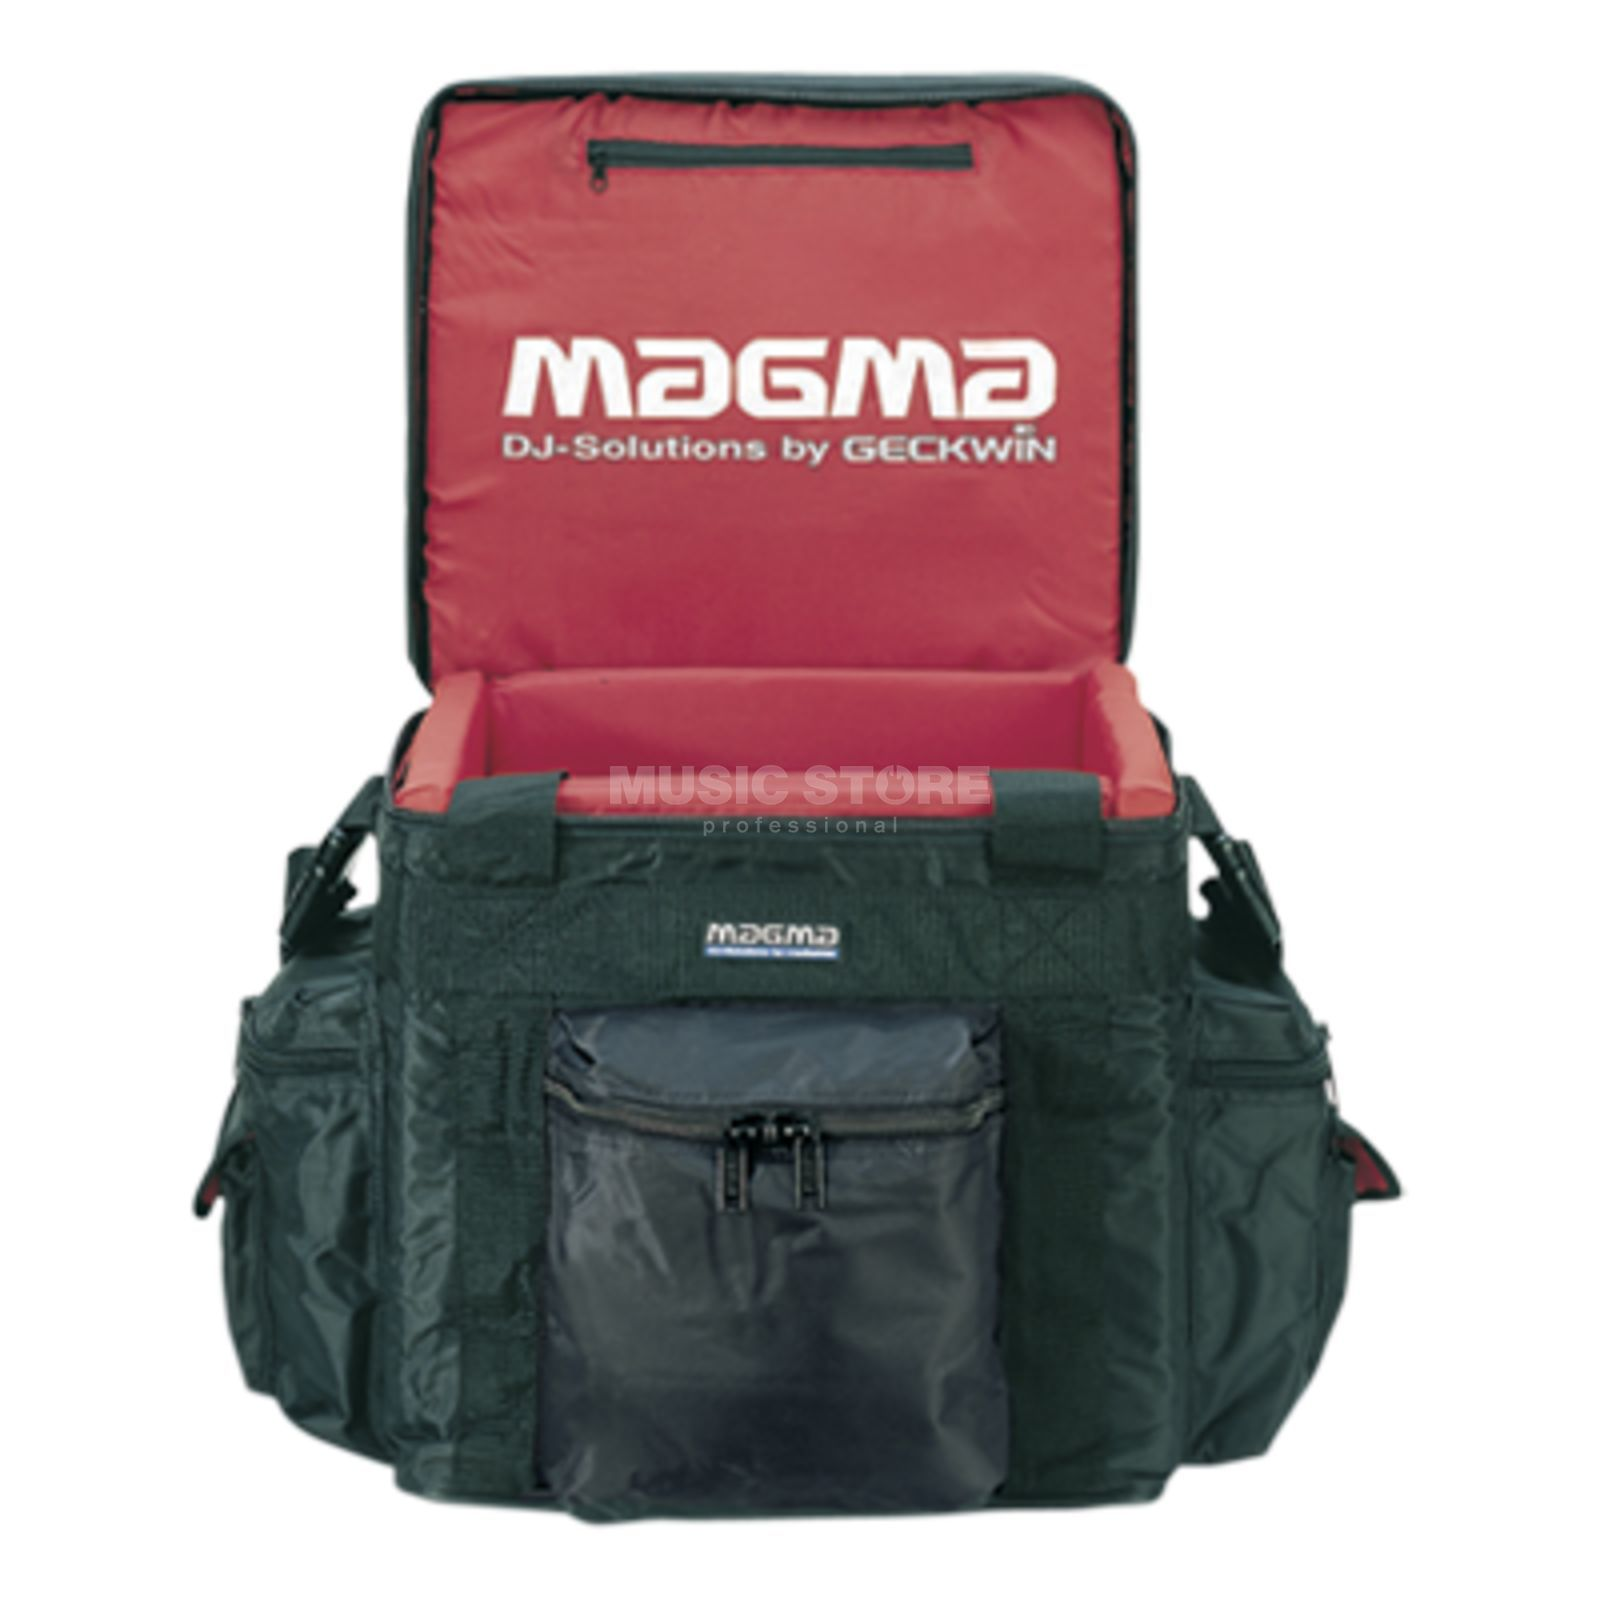 Magma LP Bag 100 Profi black/red Image du produit